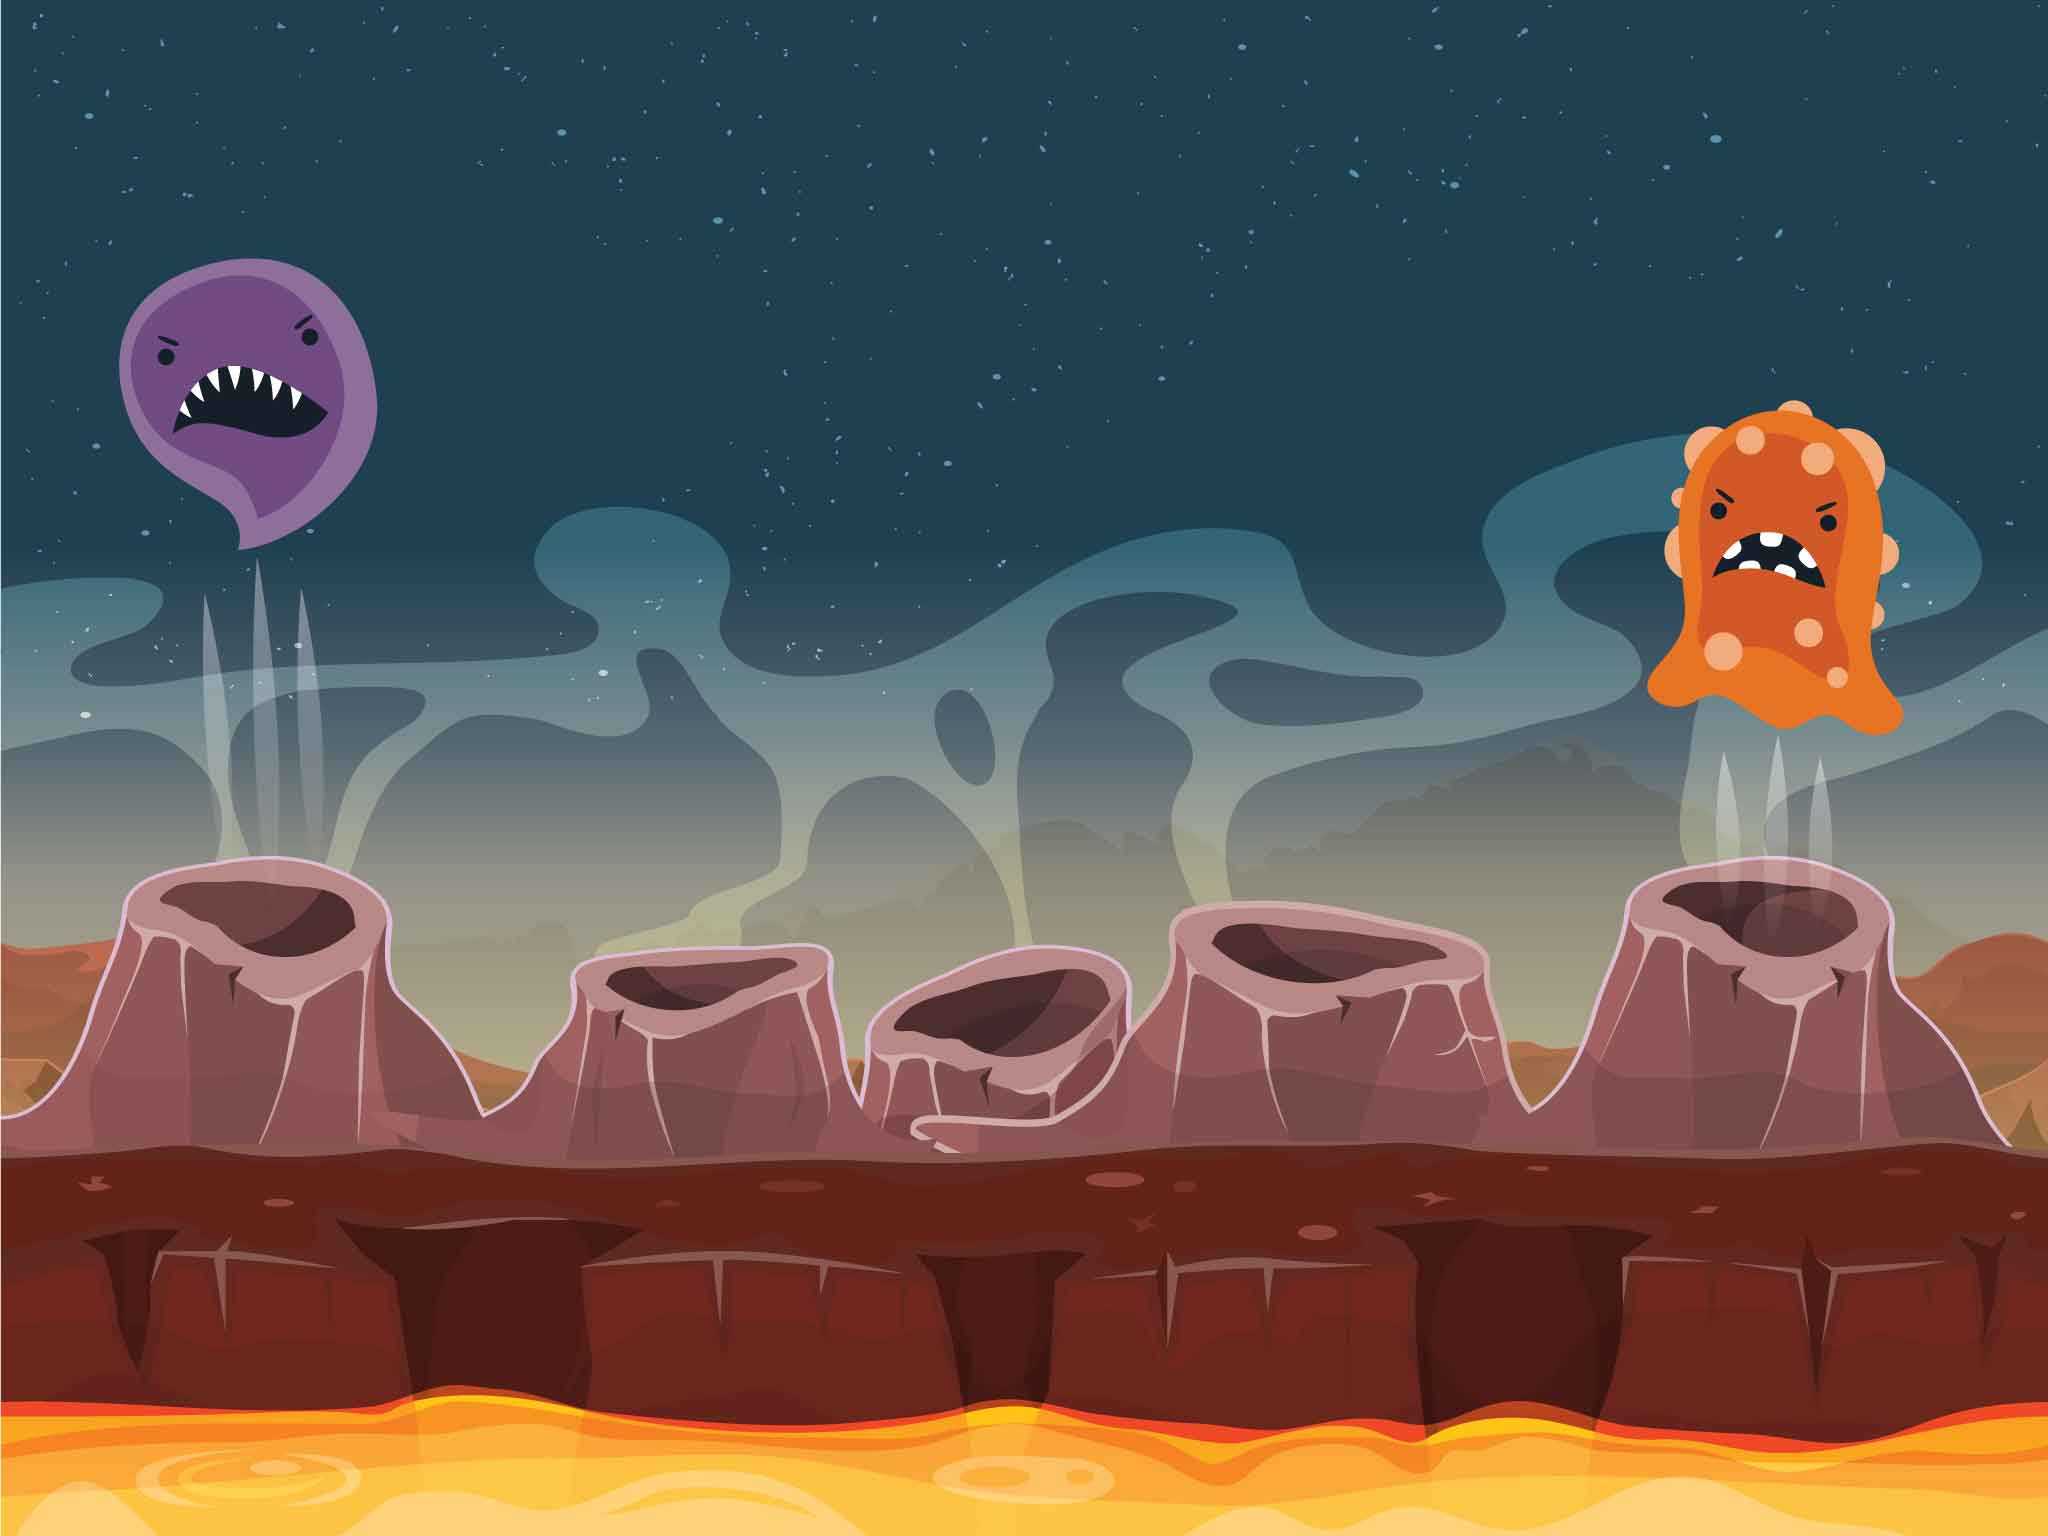 Space critters pop out of volcanic vents in a whack-a-mole style game.